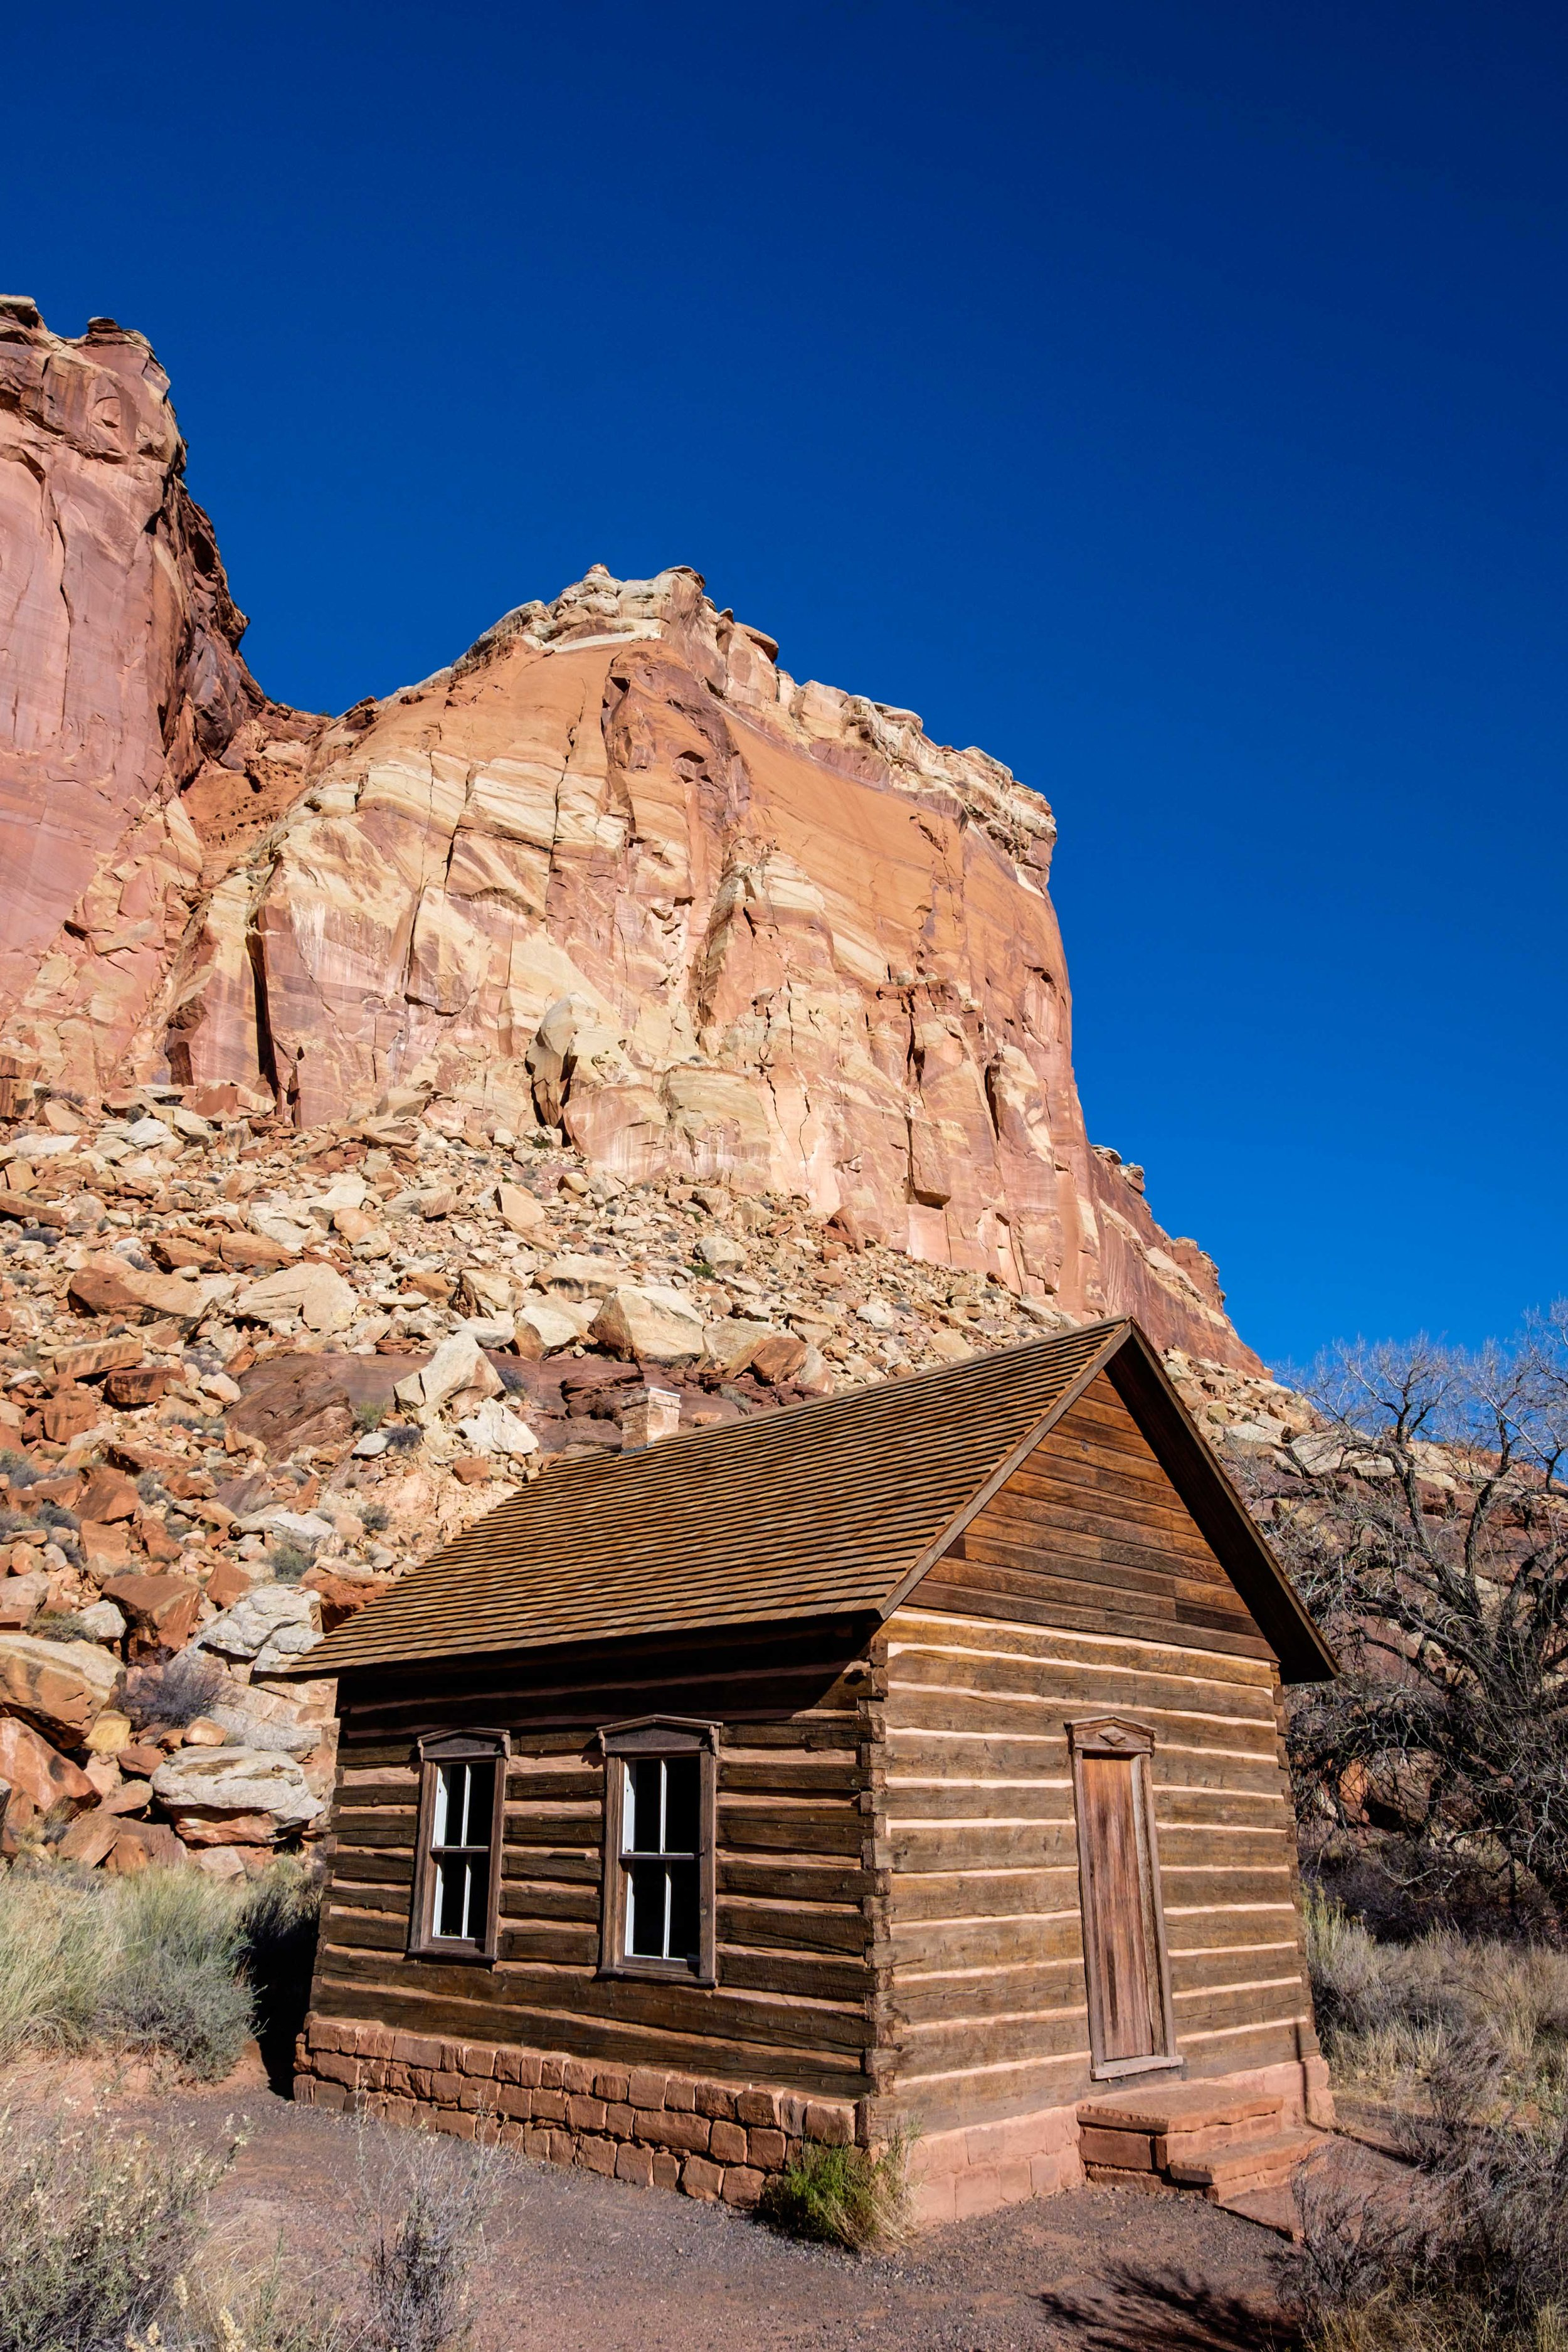 The historic Torrey Log School & Church in the Fruita district of Capitol Reef.